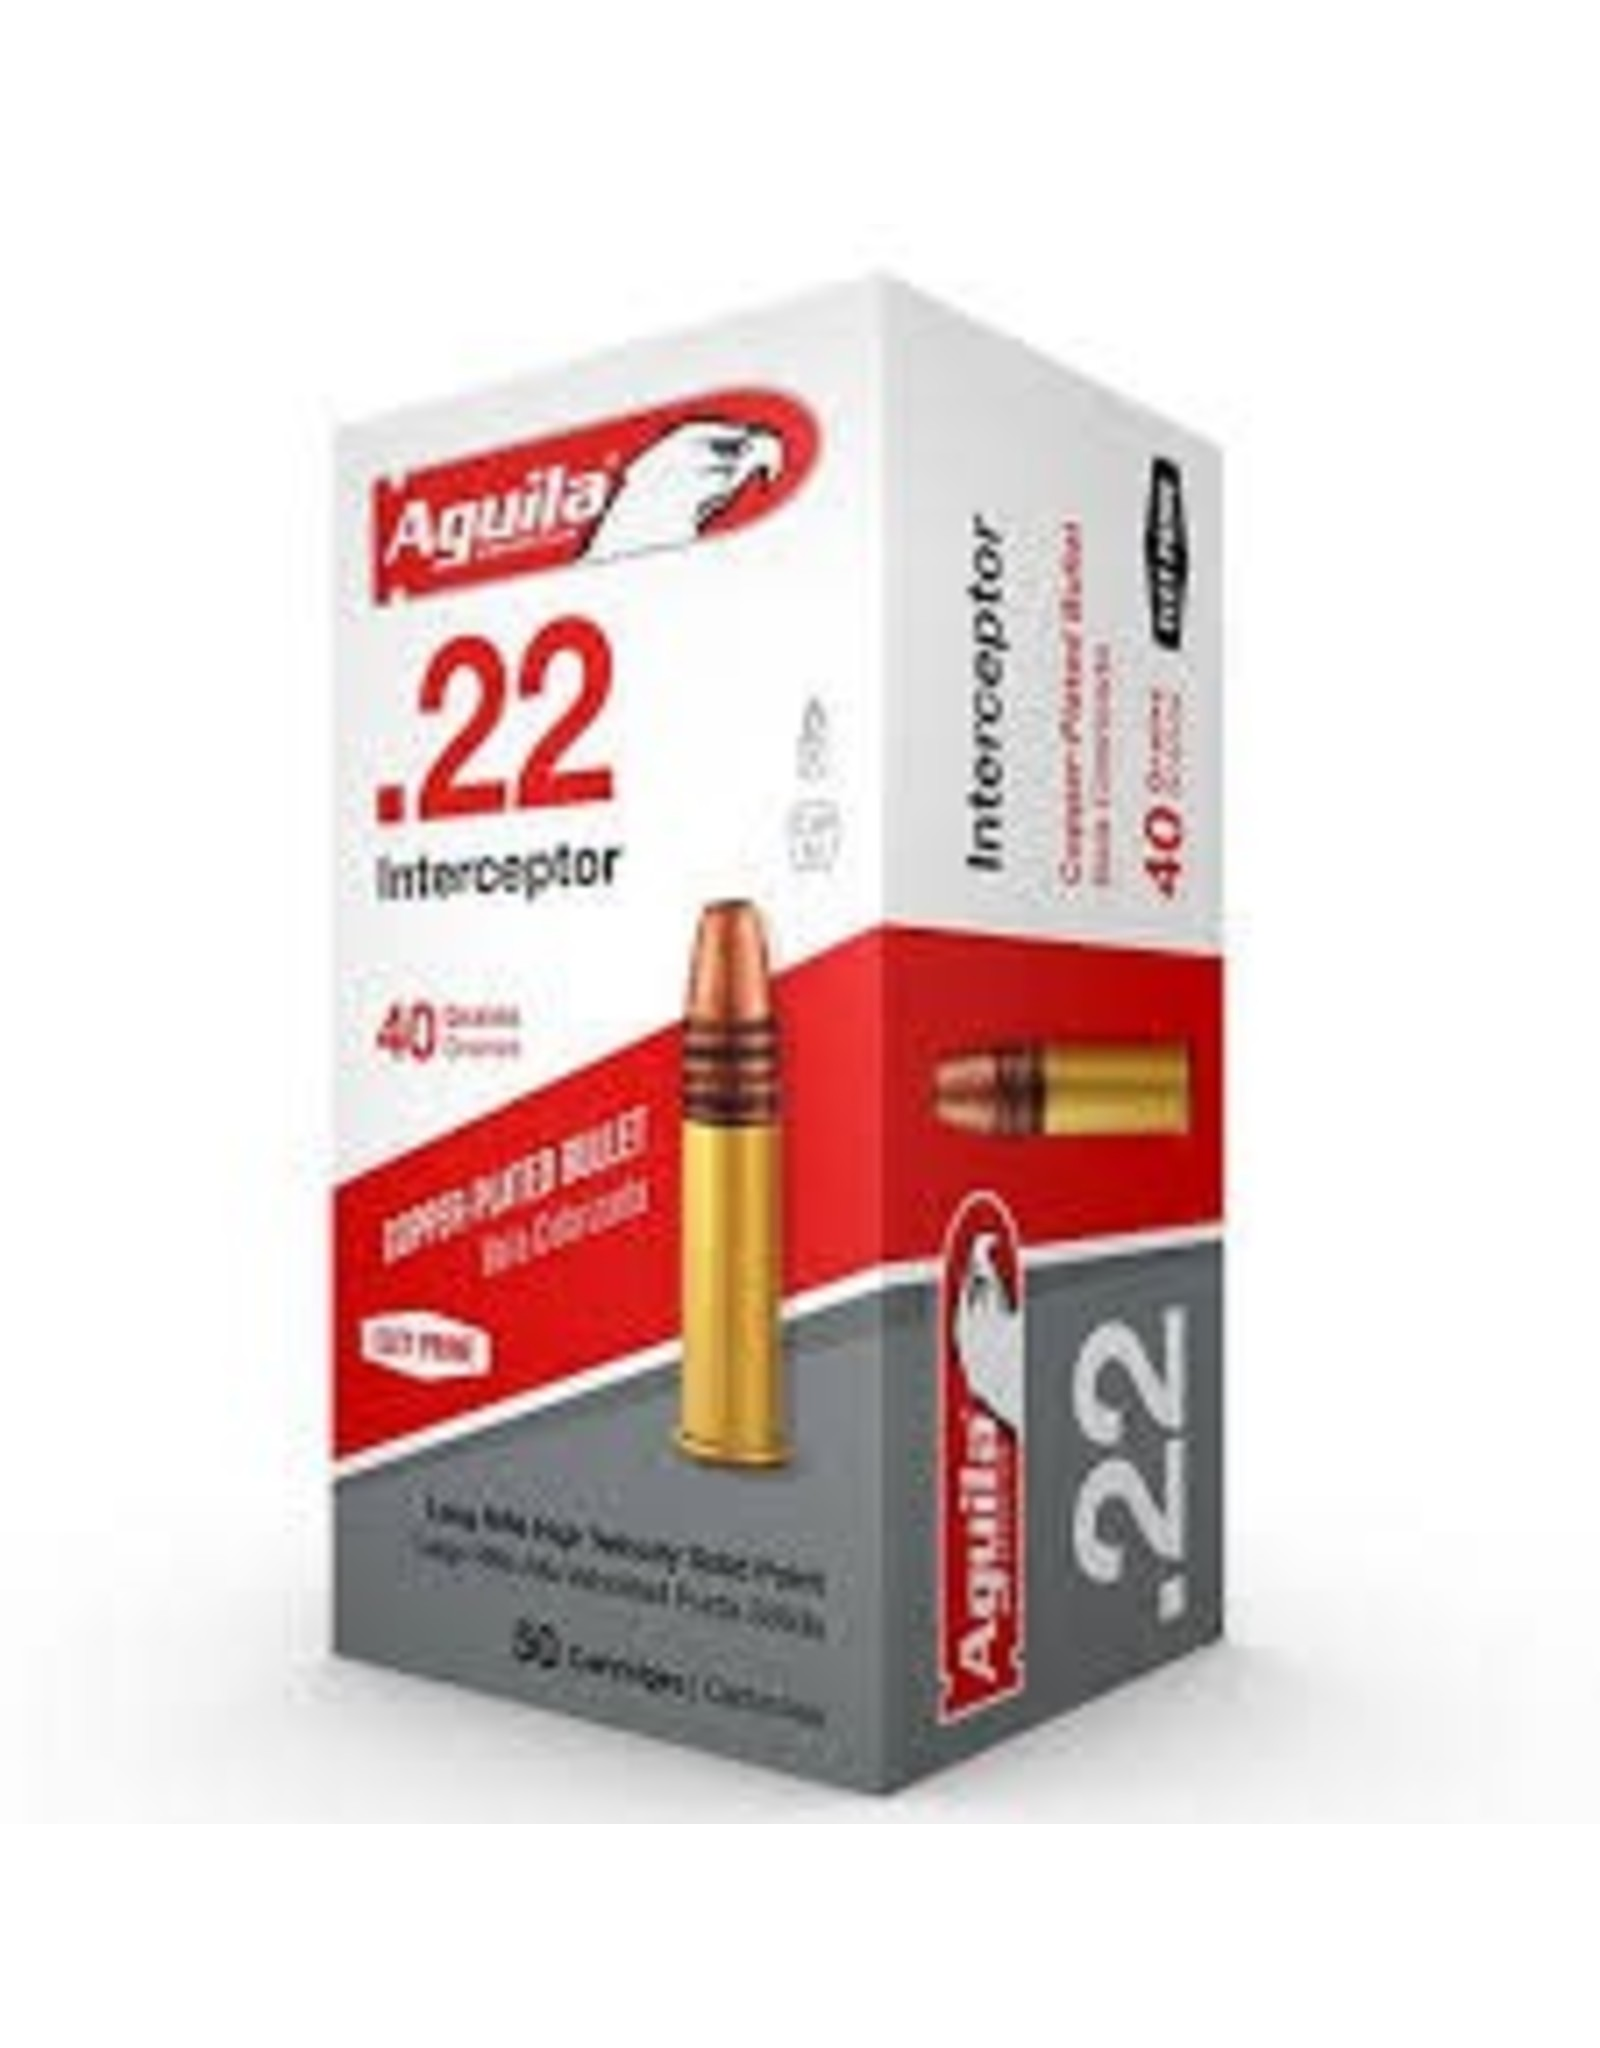 AGUILA Aguila 22LR Interceptor SP 40gr